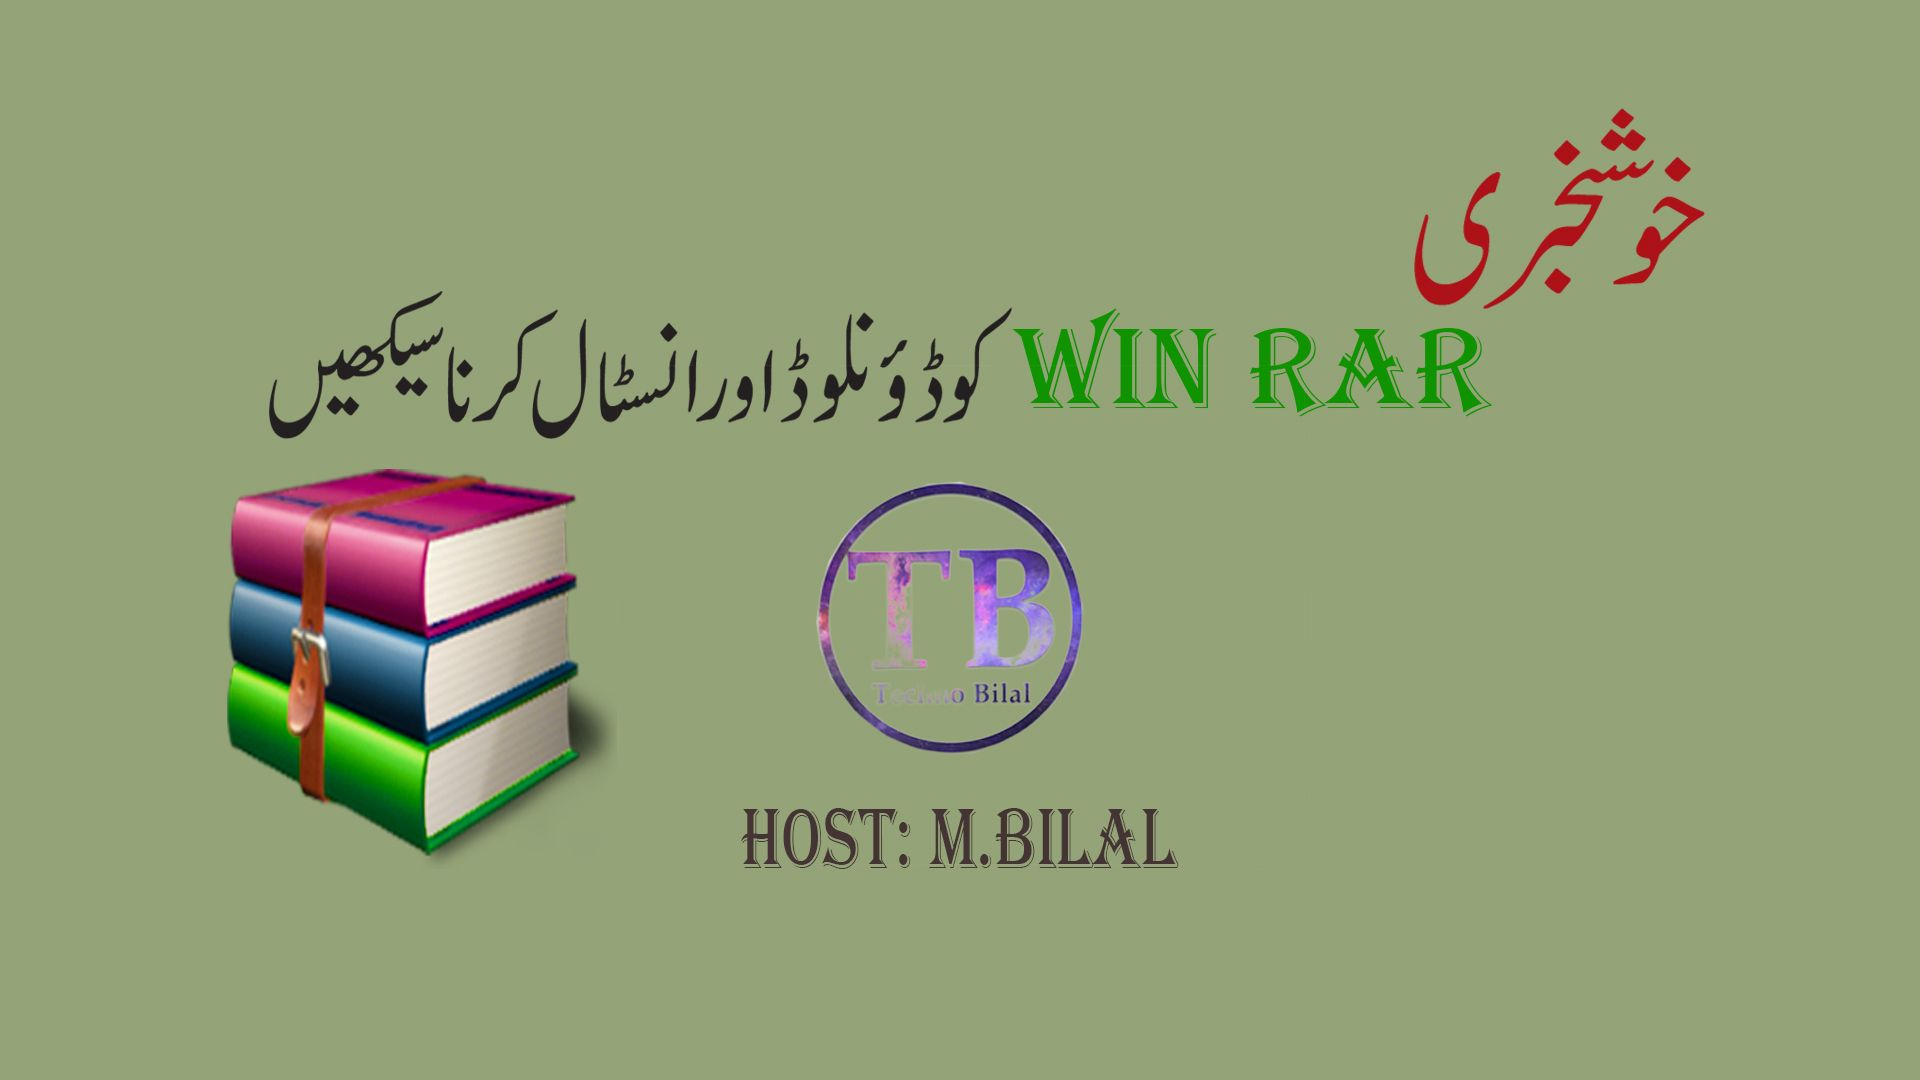 free winrar download for windows 7 full version